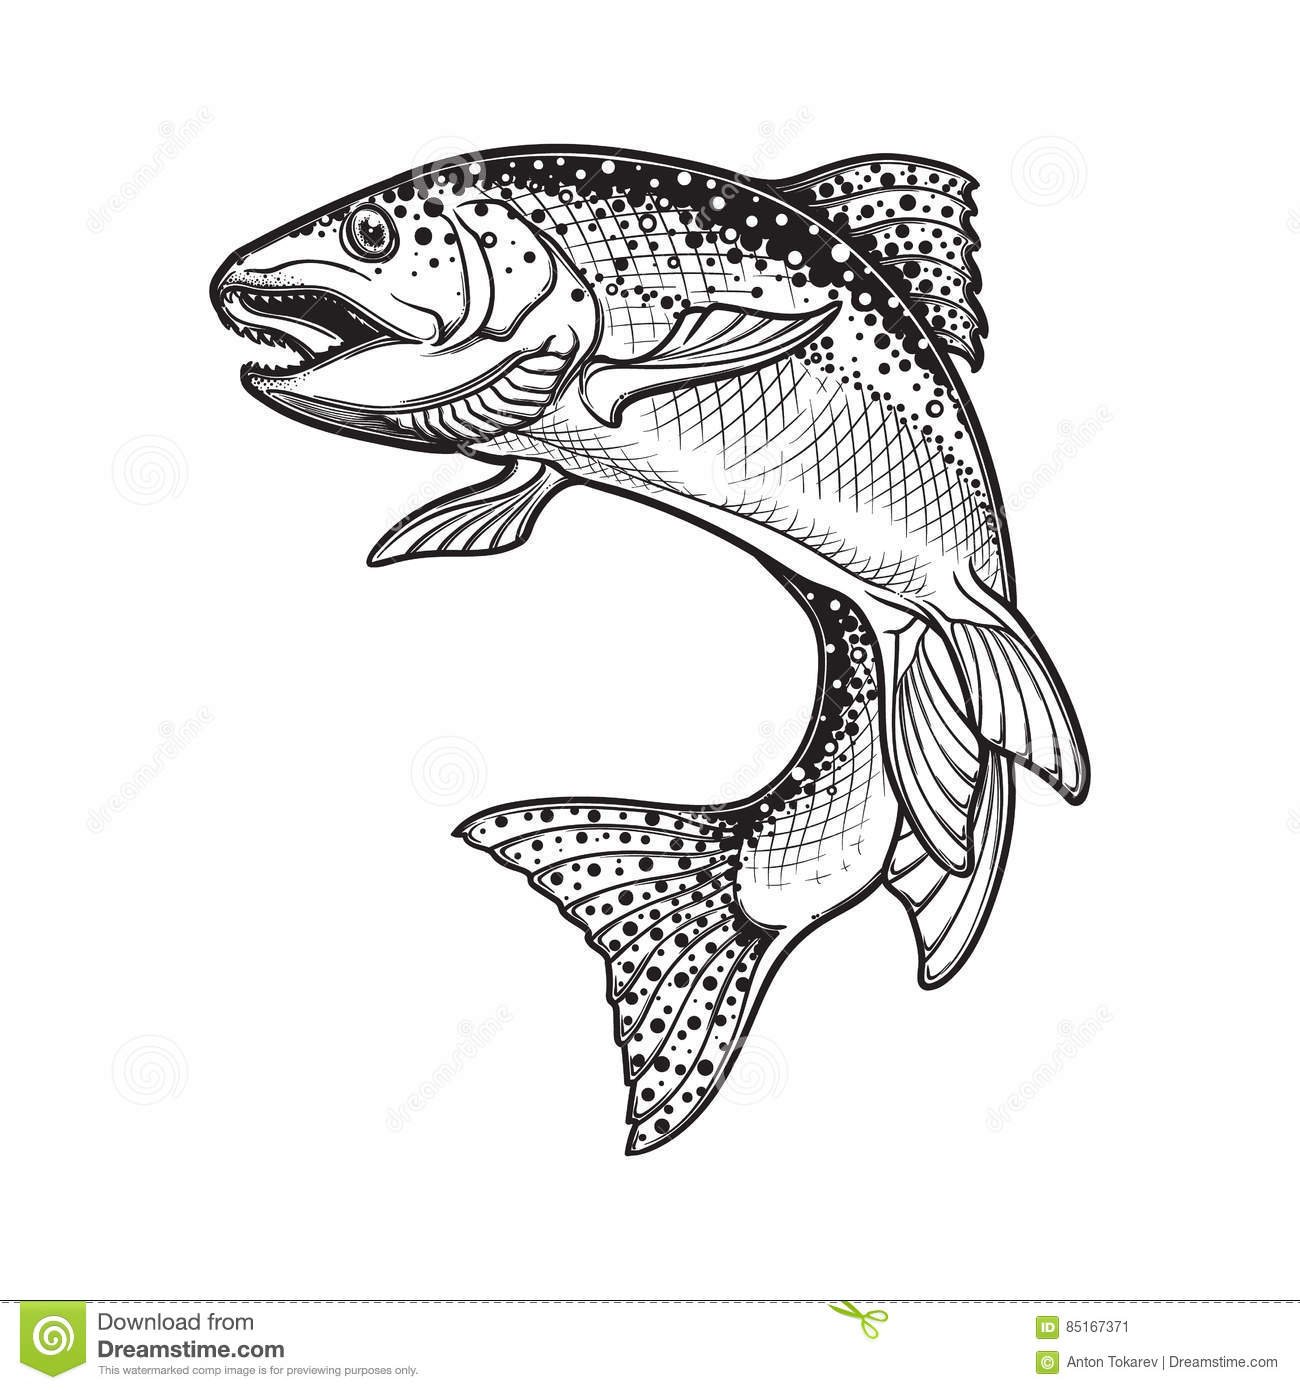 Trout drawing black and white the image for Trota da colorare